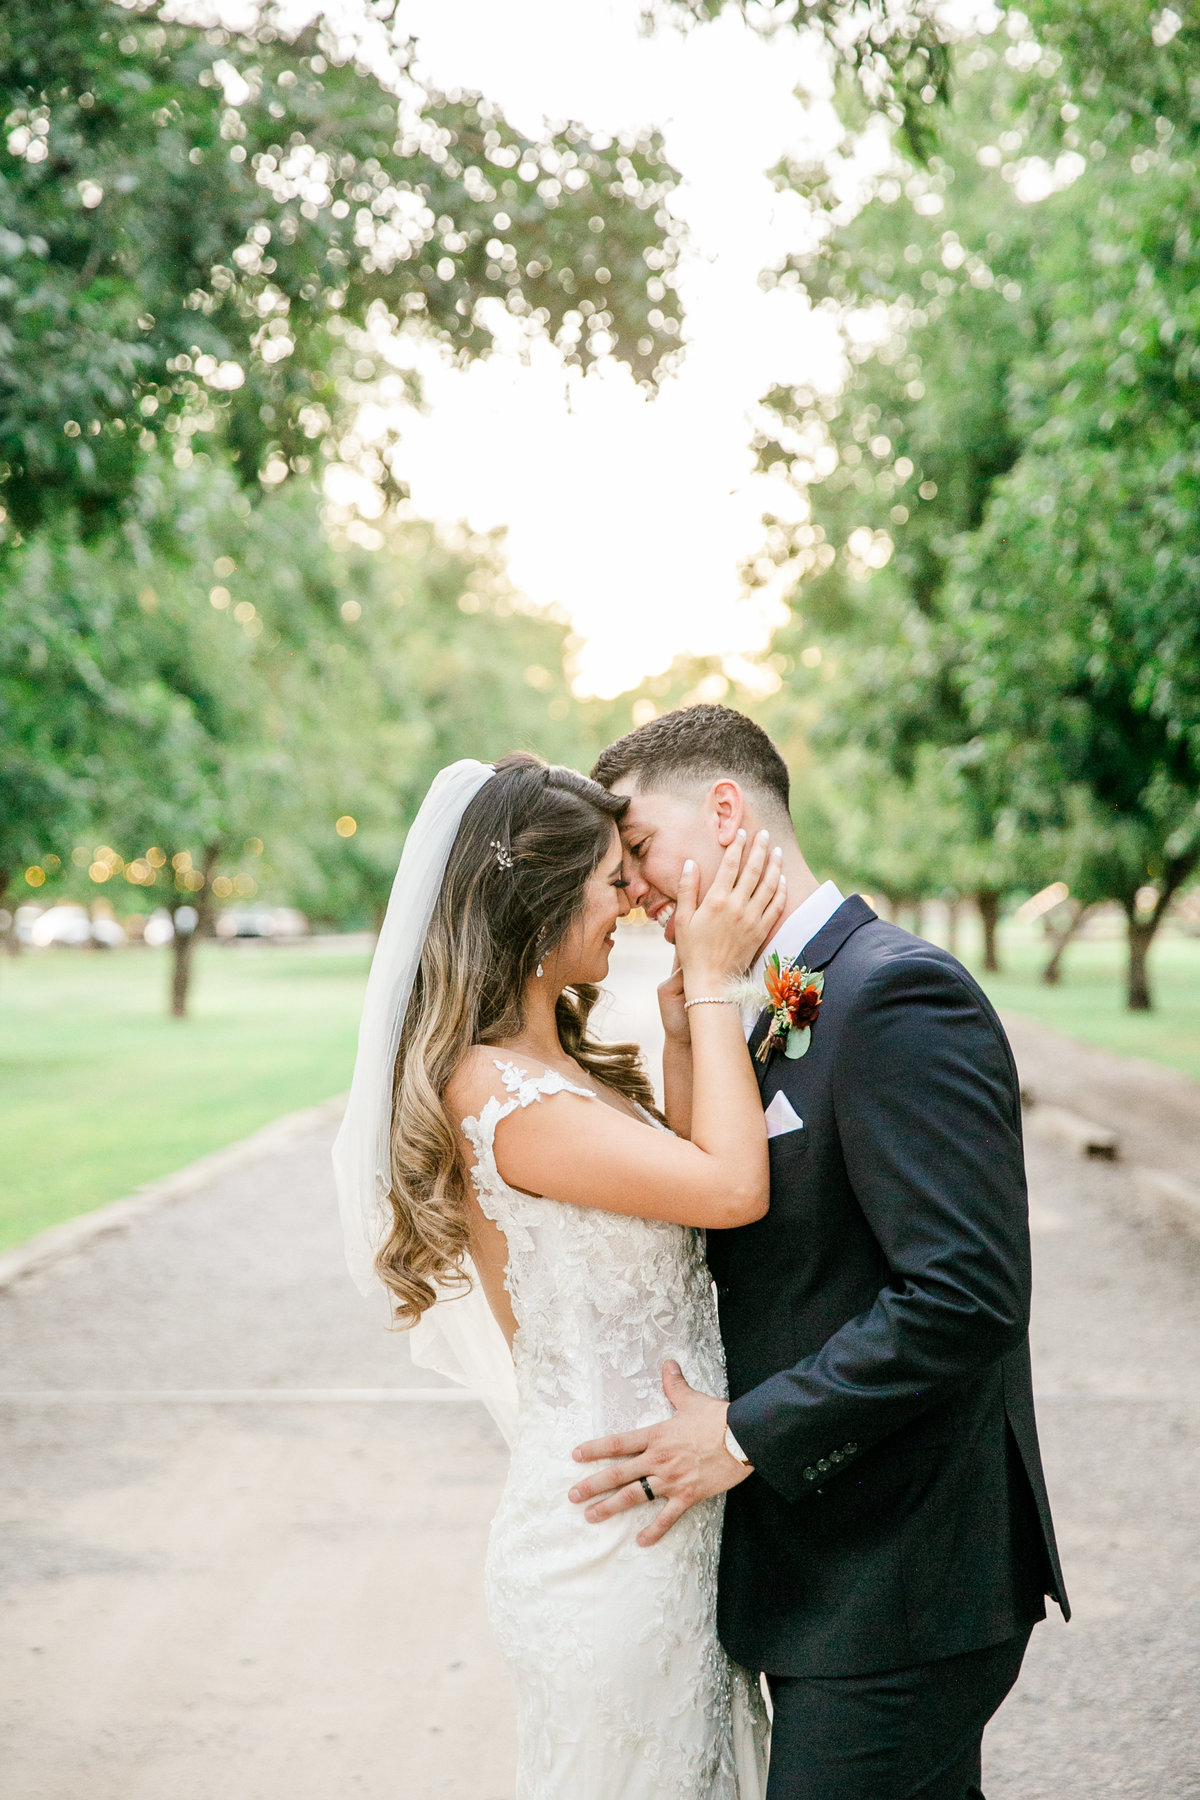 Karlie Colleen Photography - Phoenix Arizona - Farm At South Mountain Venue - Vanessa & Robert-713